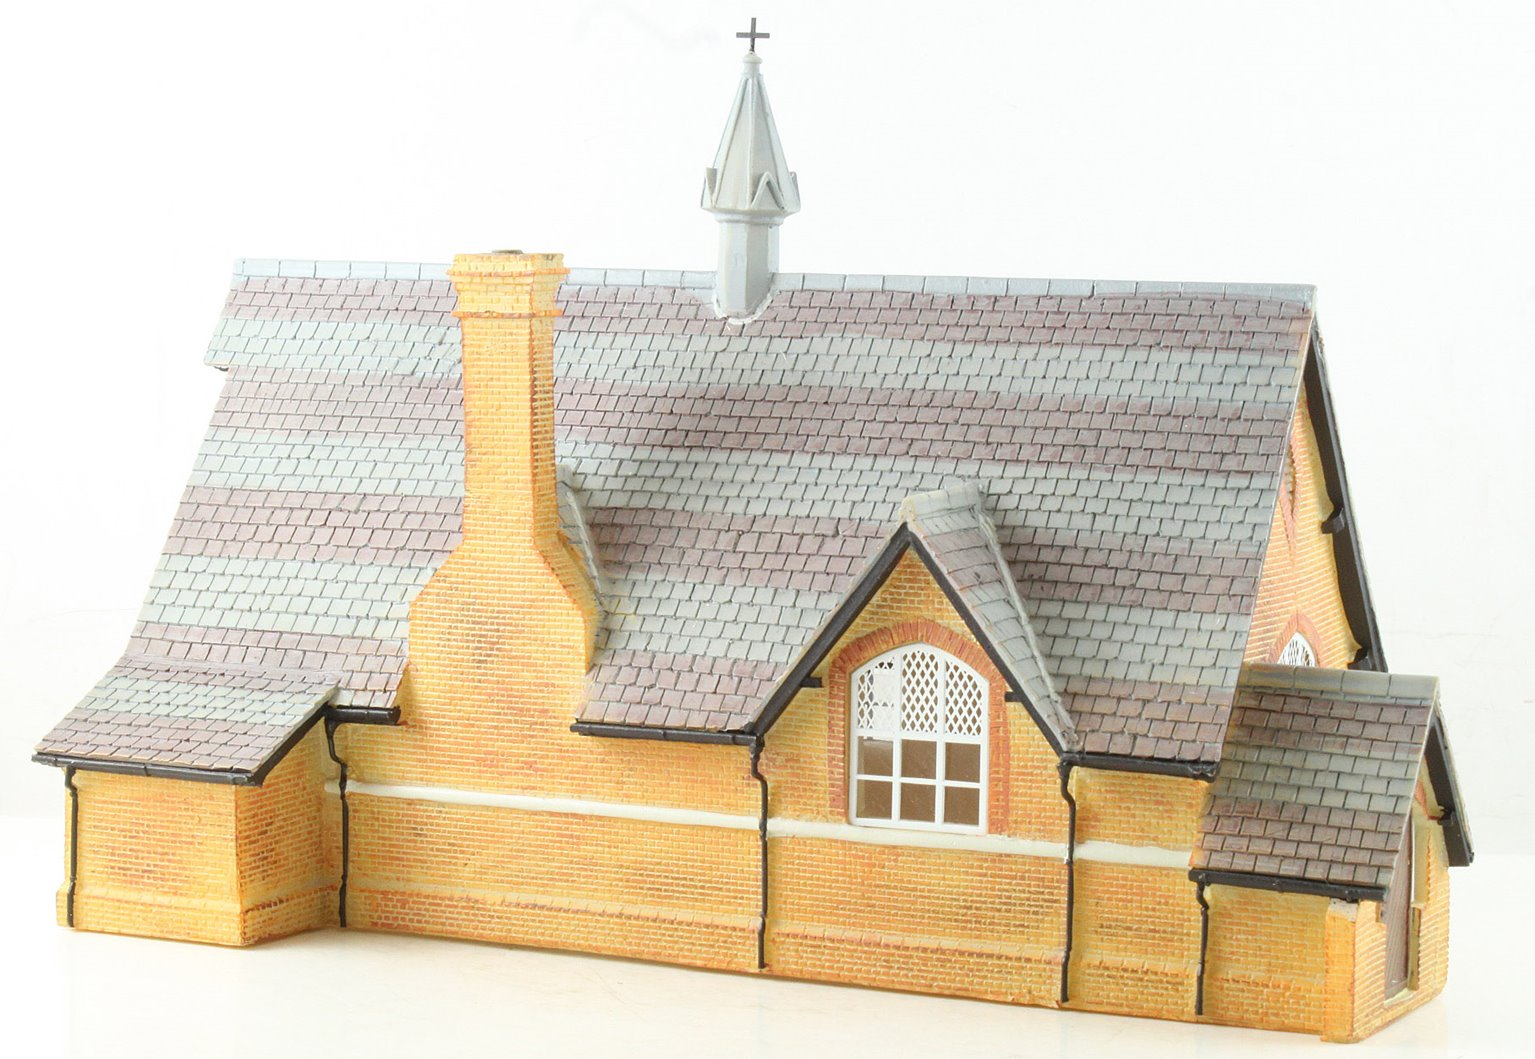 Pendon Snell's Hall 200mm x 100mm x 130mm